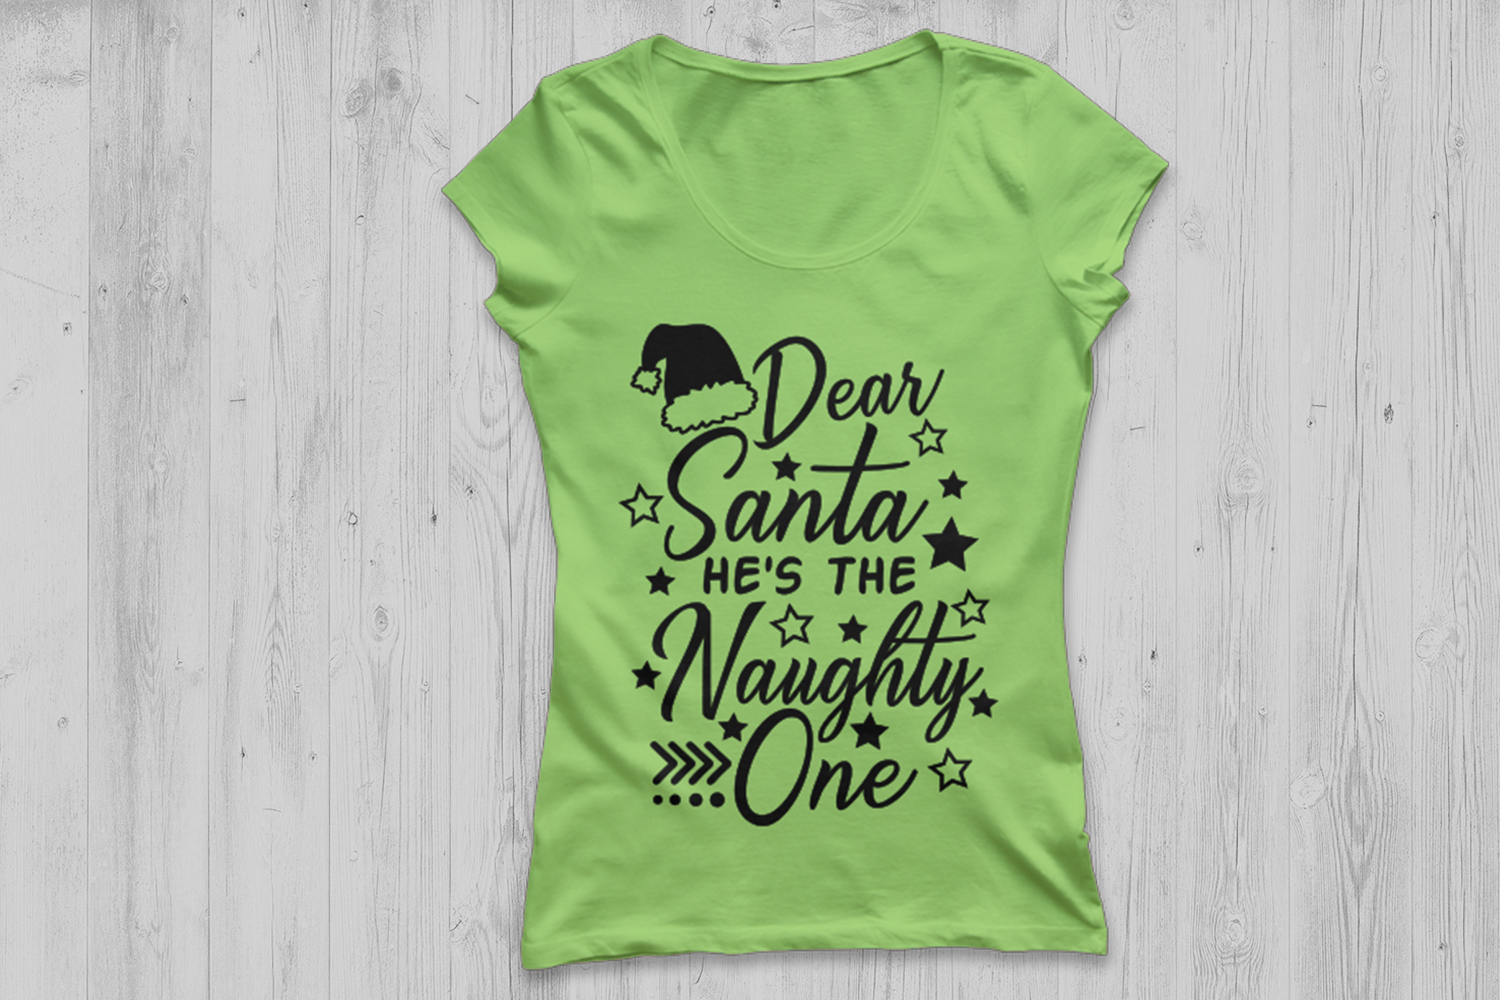 b47d36dea dear santa he's the naughty one svg, christmas svg, santa. example image 2